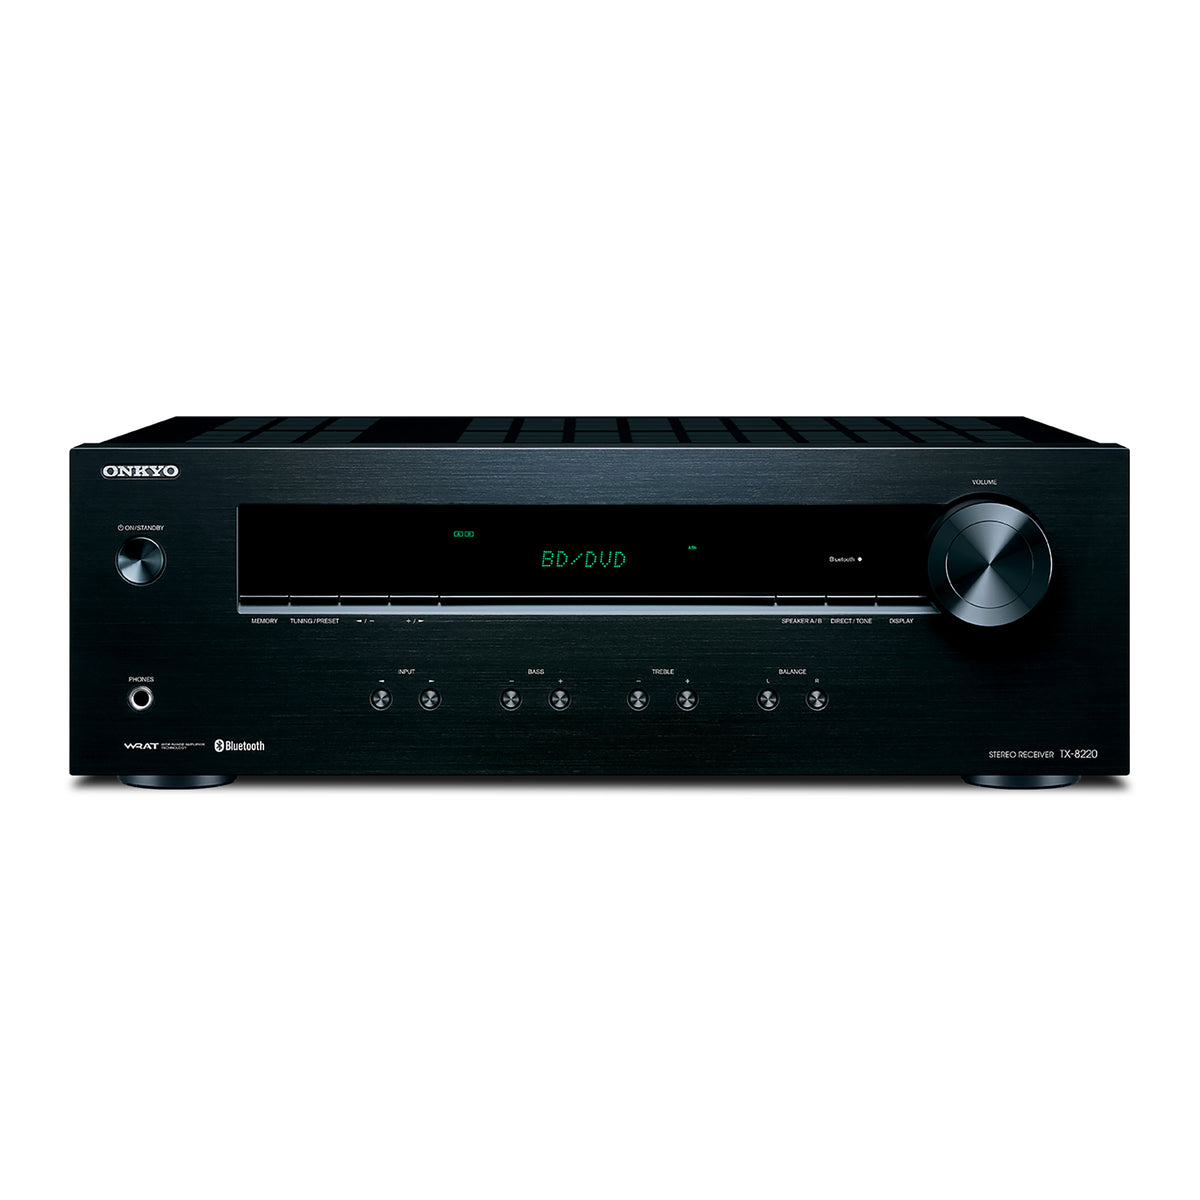 Onkyo: TX-8220 Stereo Receiver (FM/AM, Amplifier, Phono Preamp, Bluetooth)